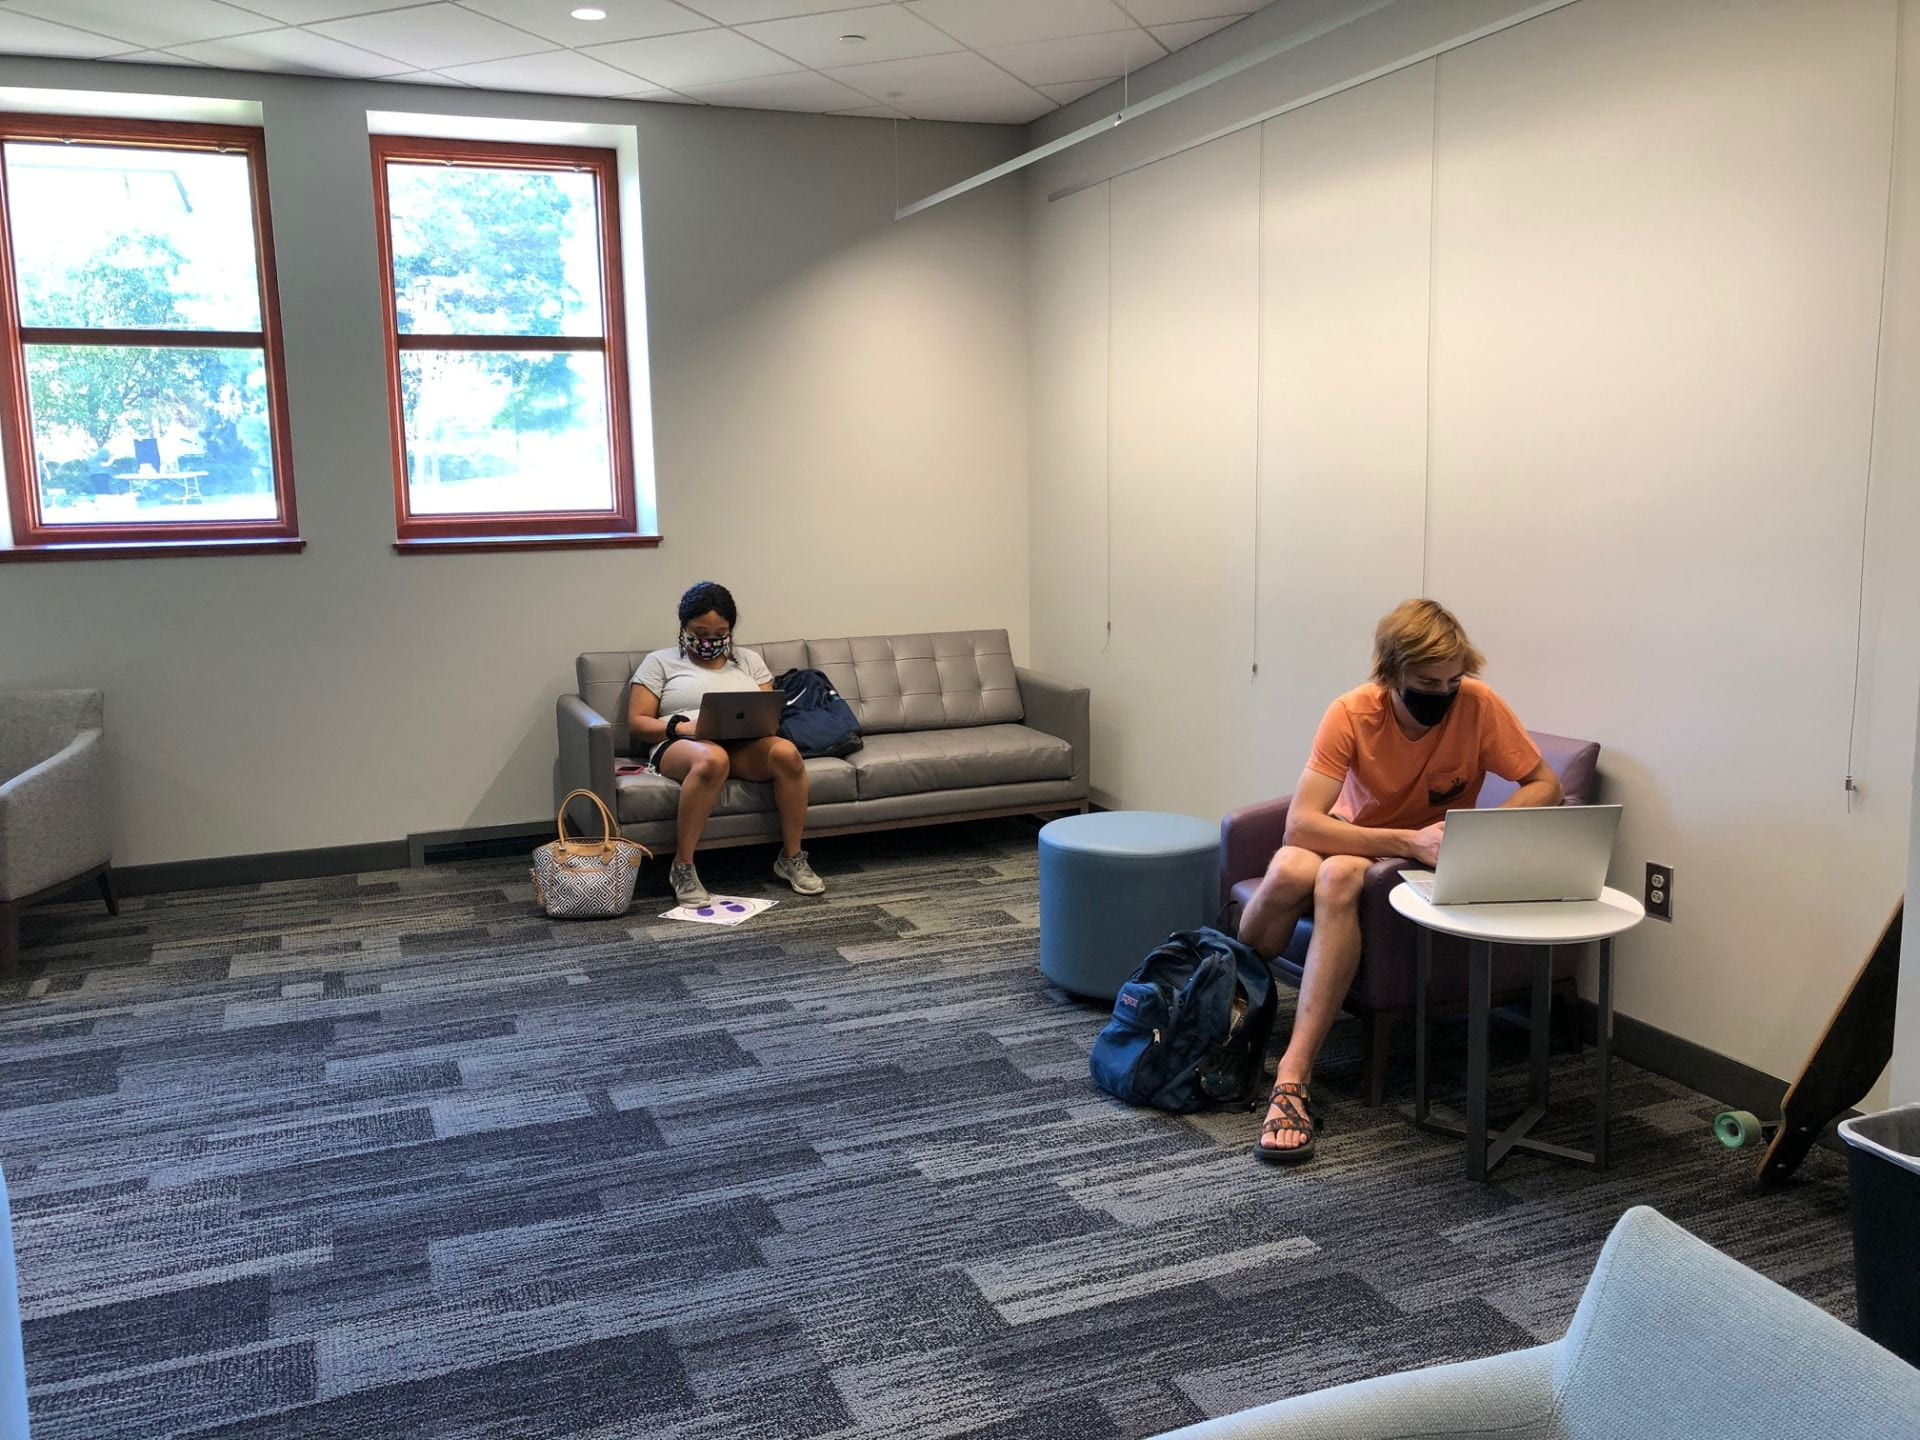 K-State students study on the first floor while wearing masks.